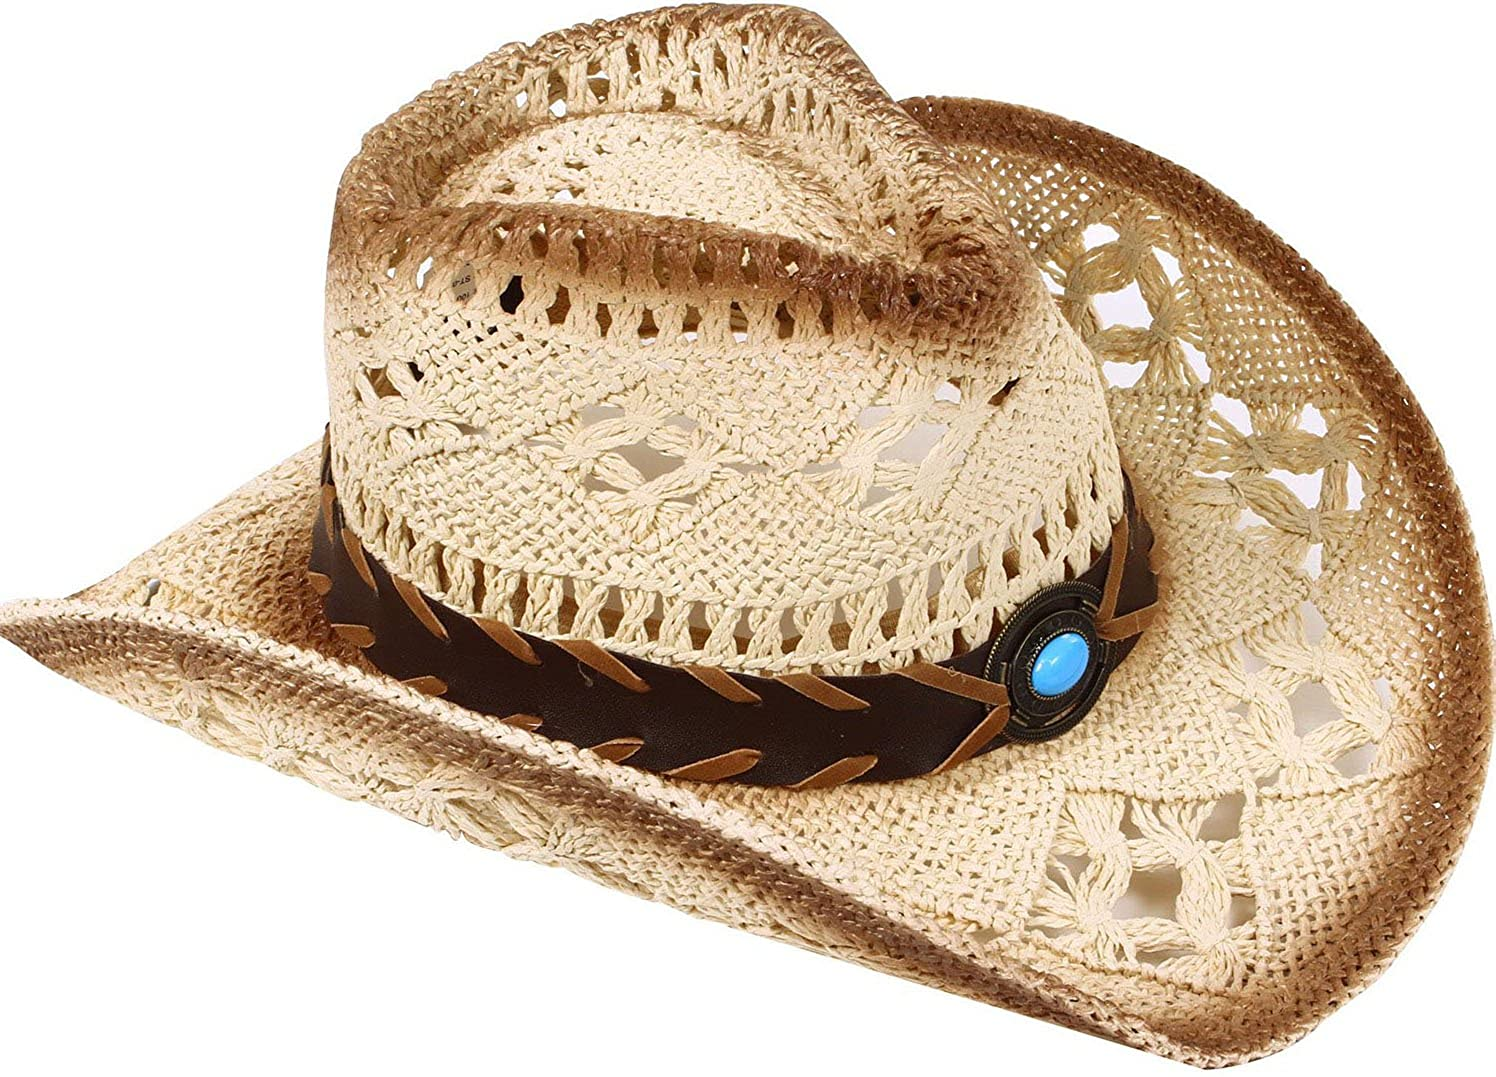 078263175822ac Simplicity Western Country Style Cowboy Straw Hat Leather Band Turquoise  Jewel: Amazon.in: Clothing & Accessories